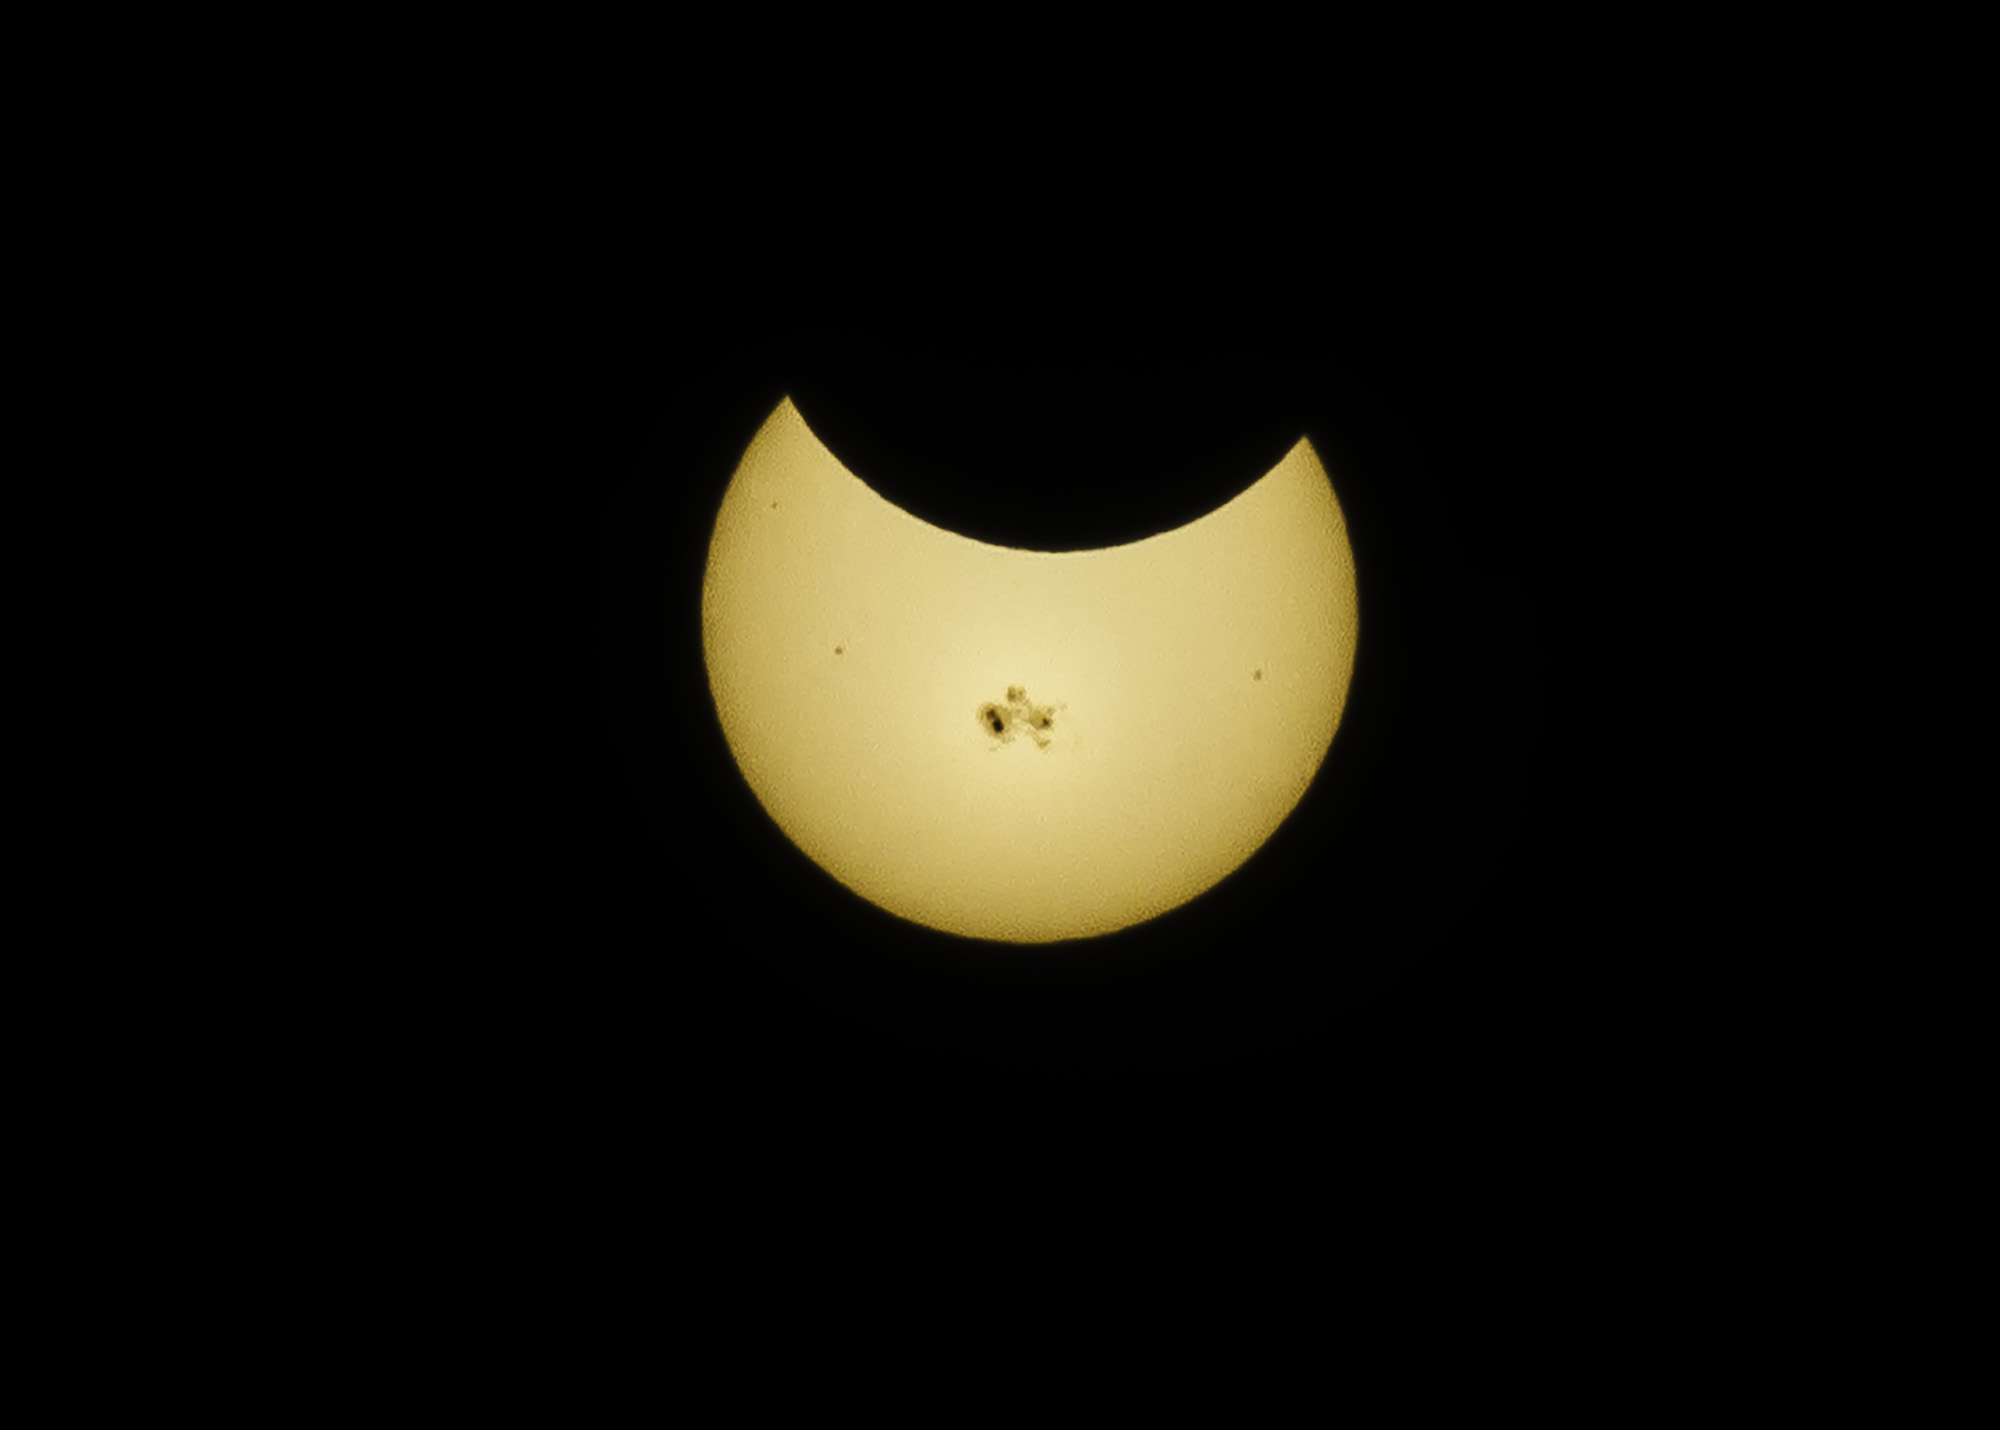 Eclipse9-23-14.jpg